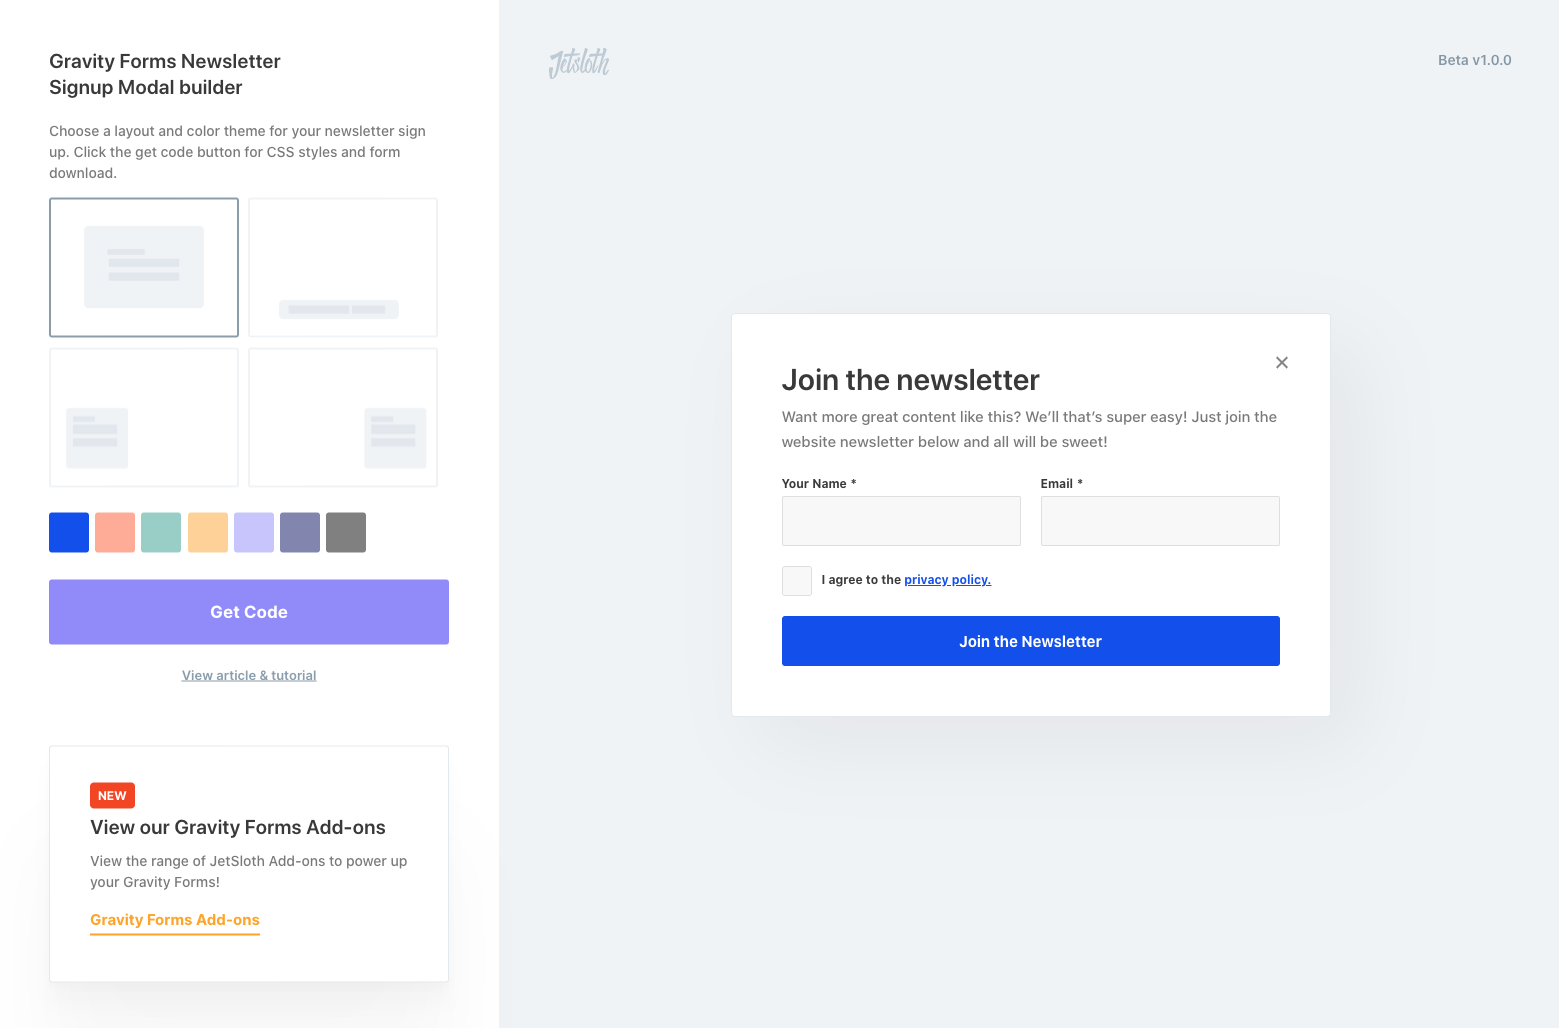 How to create a newsletter sign up modal with Gravity Forms